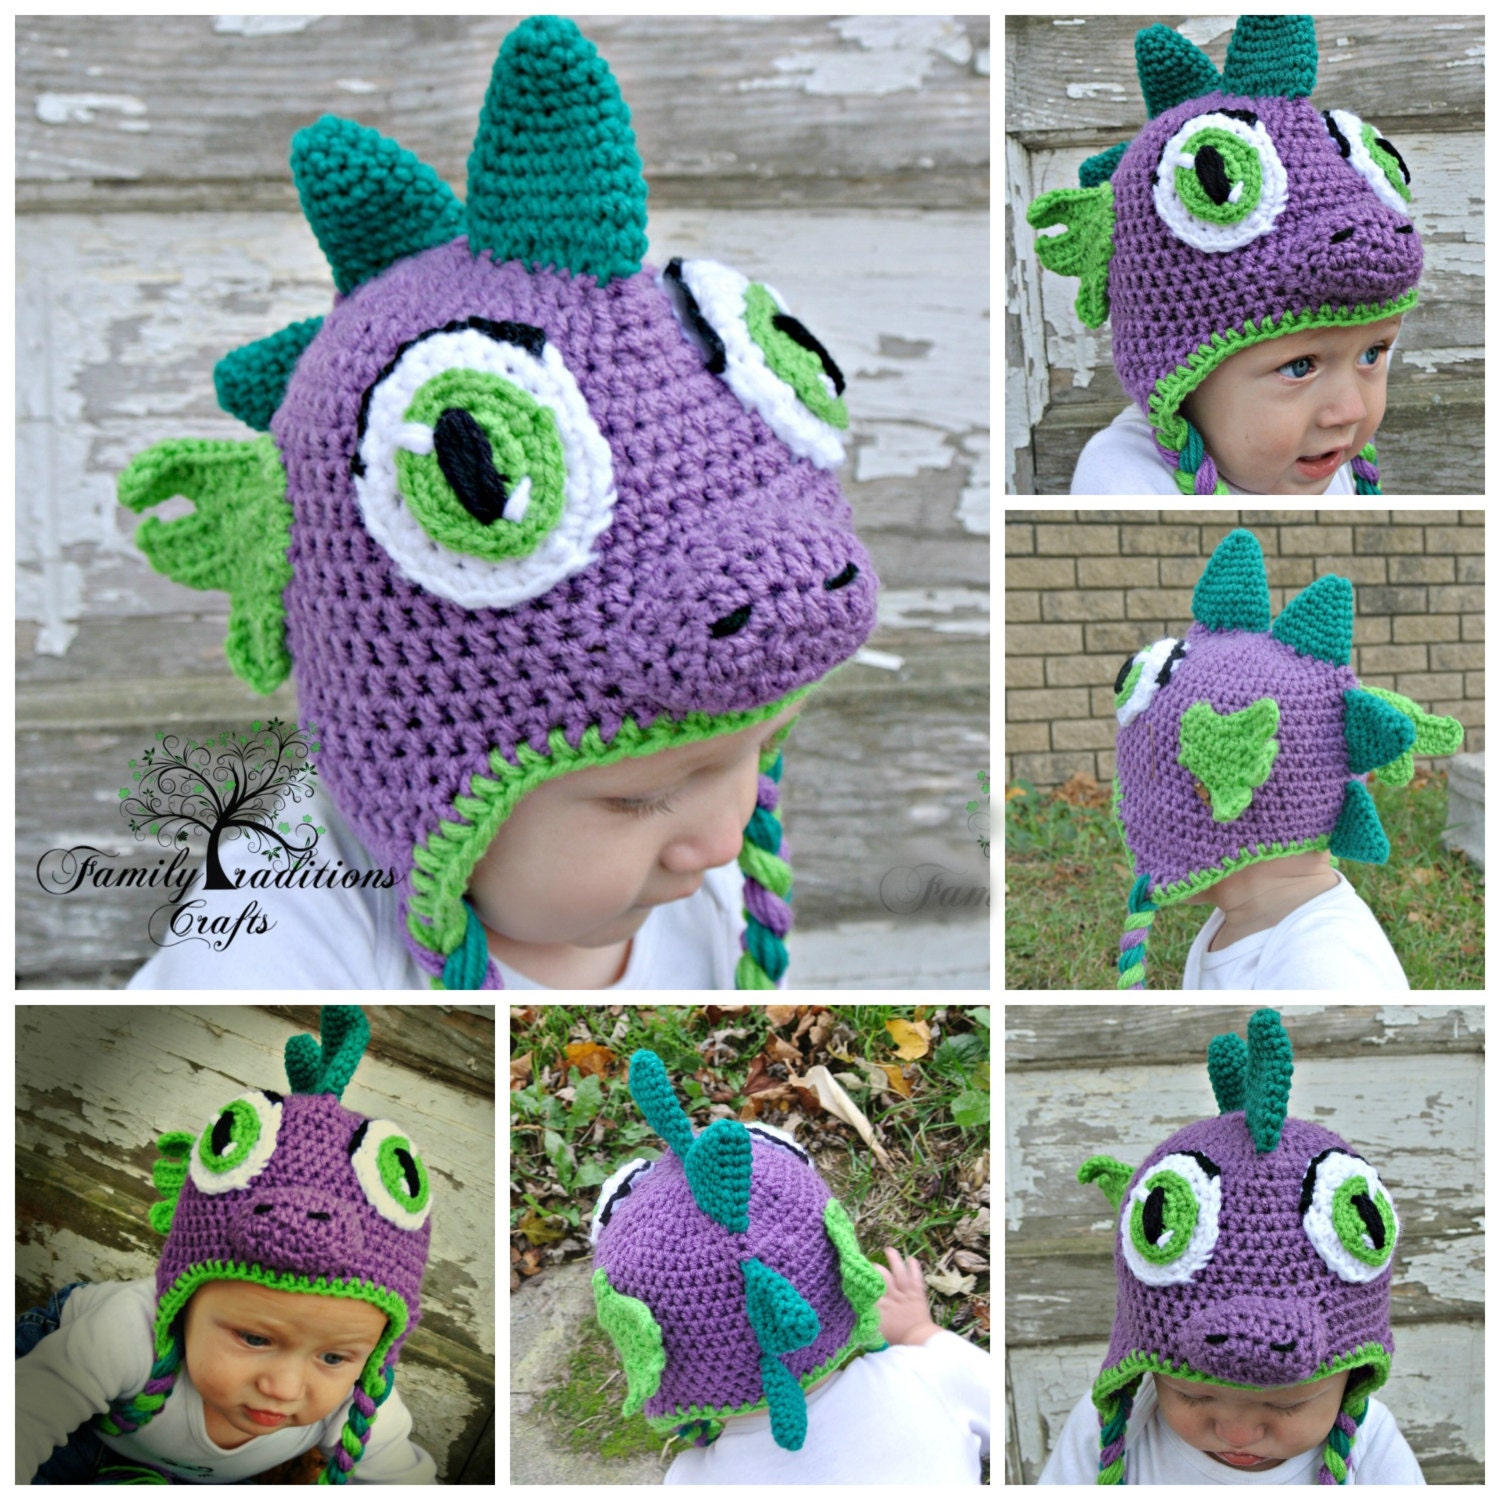 Free Crochet Pattern For Dinosaur Beanie : PATTERN Dinosaur or Dragon Crochet Hat Pattern PDF by ...